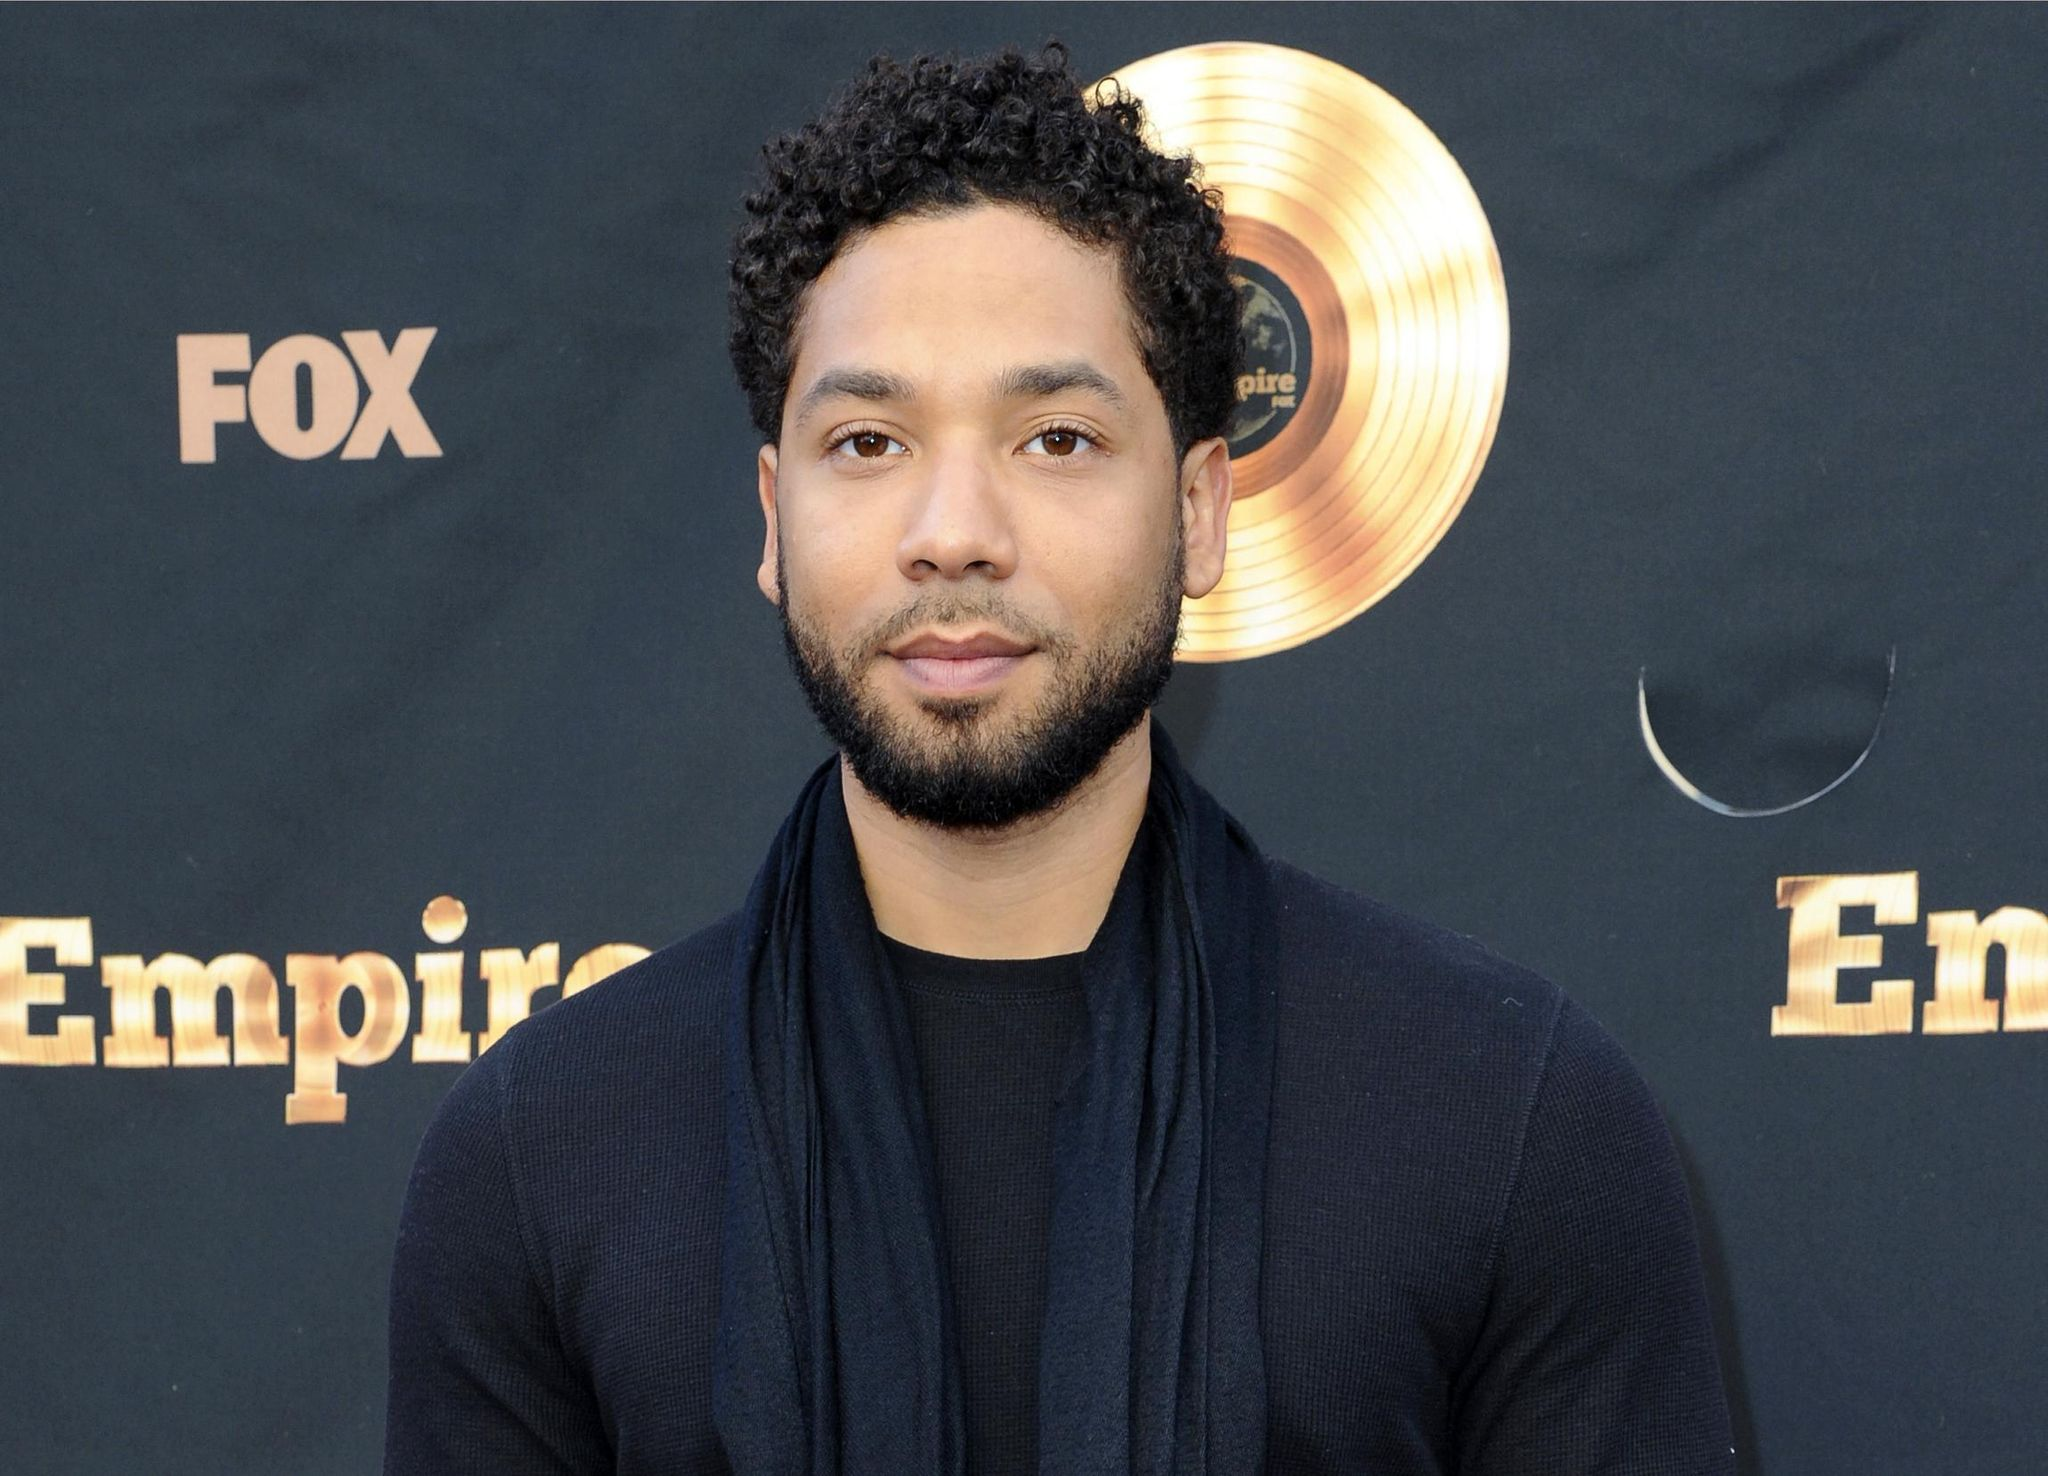 Jussie Smollett was convicted of providing false information to law enforcement in 2007 - Washington Times